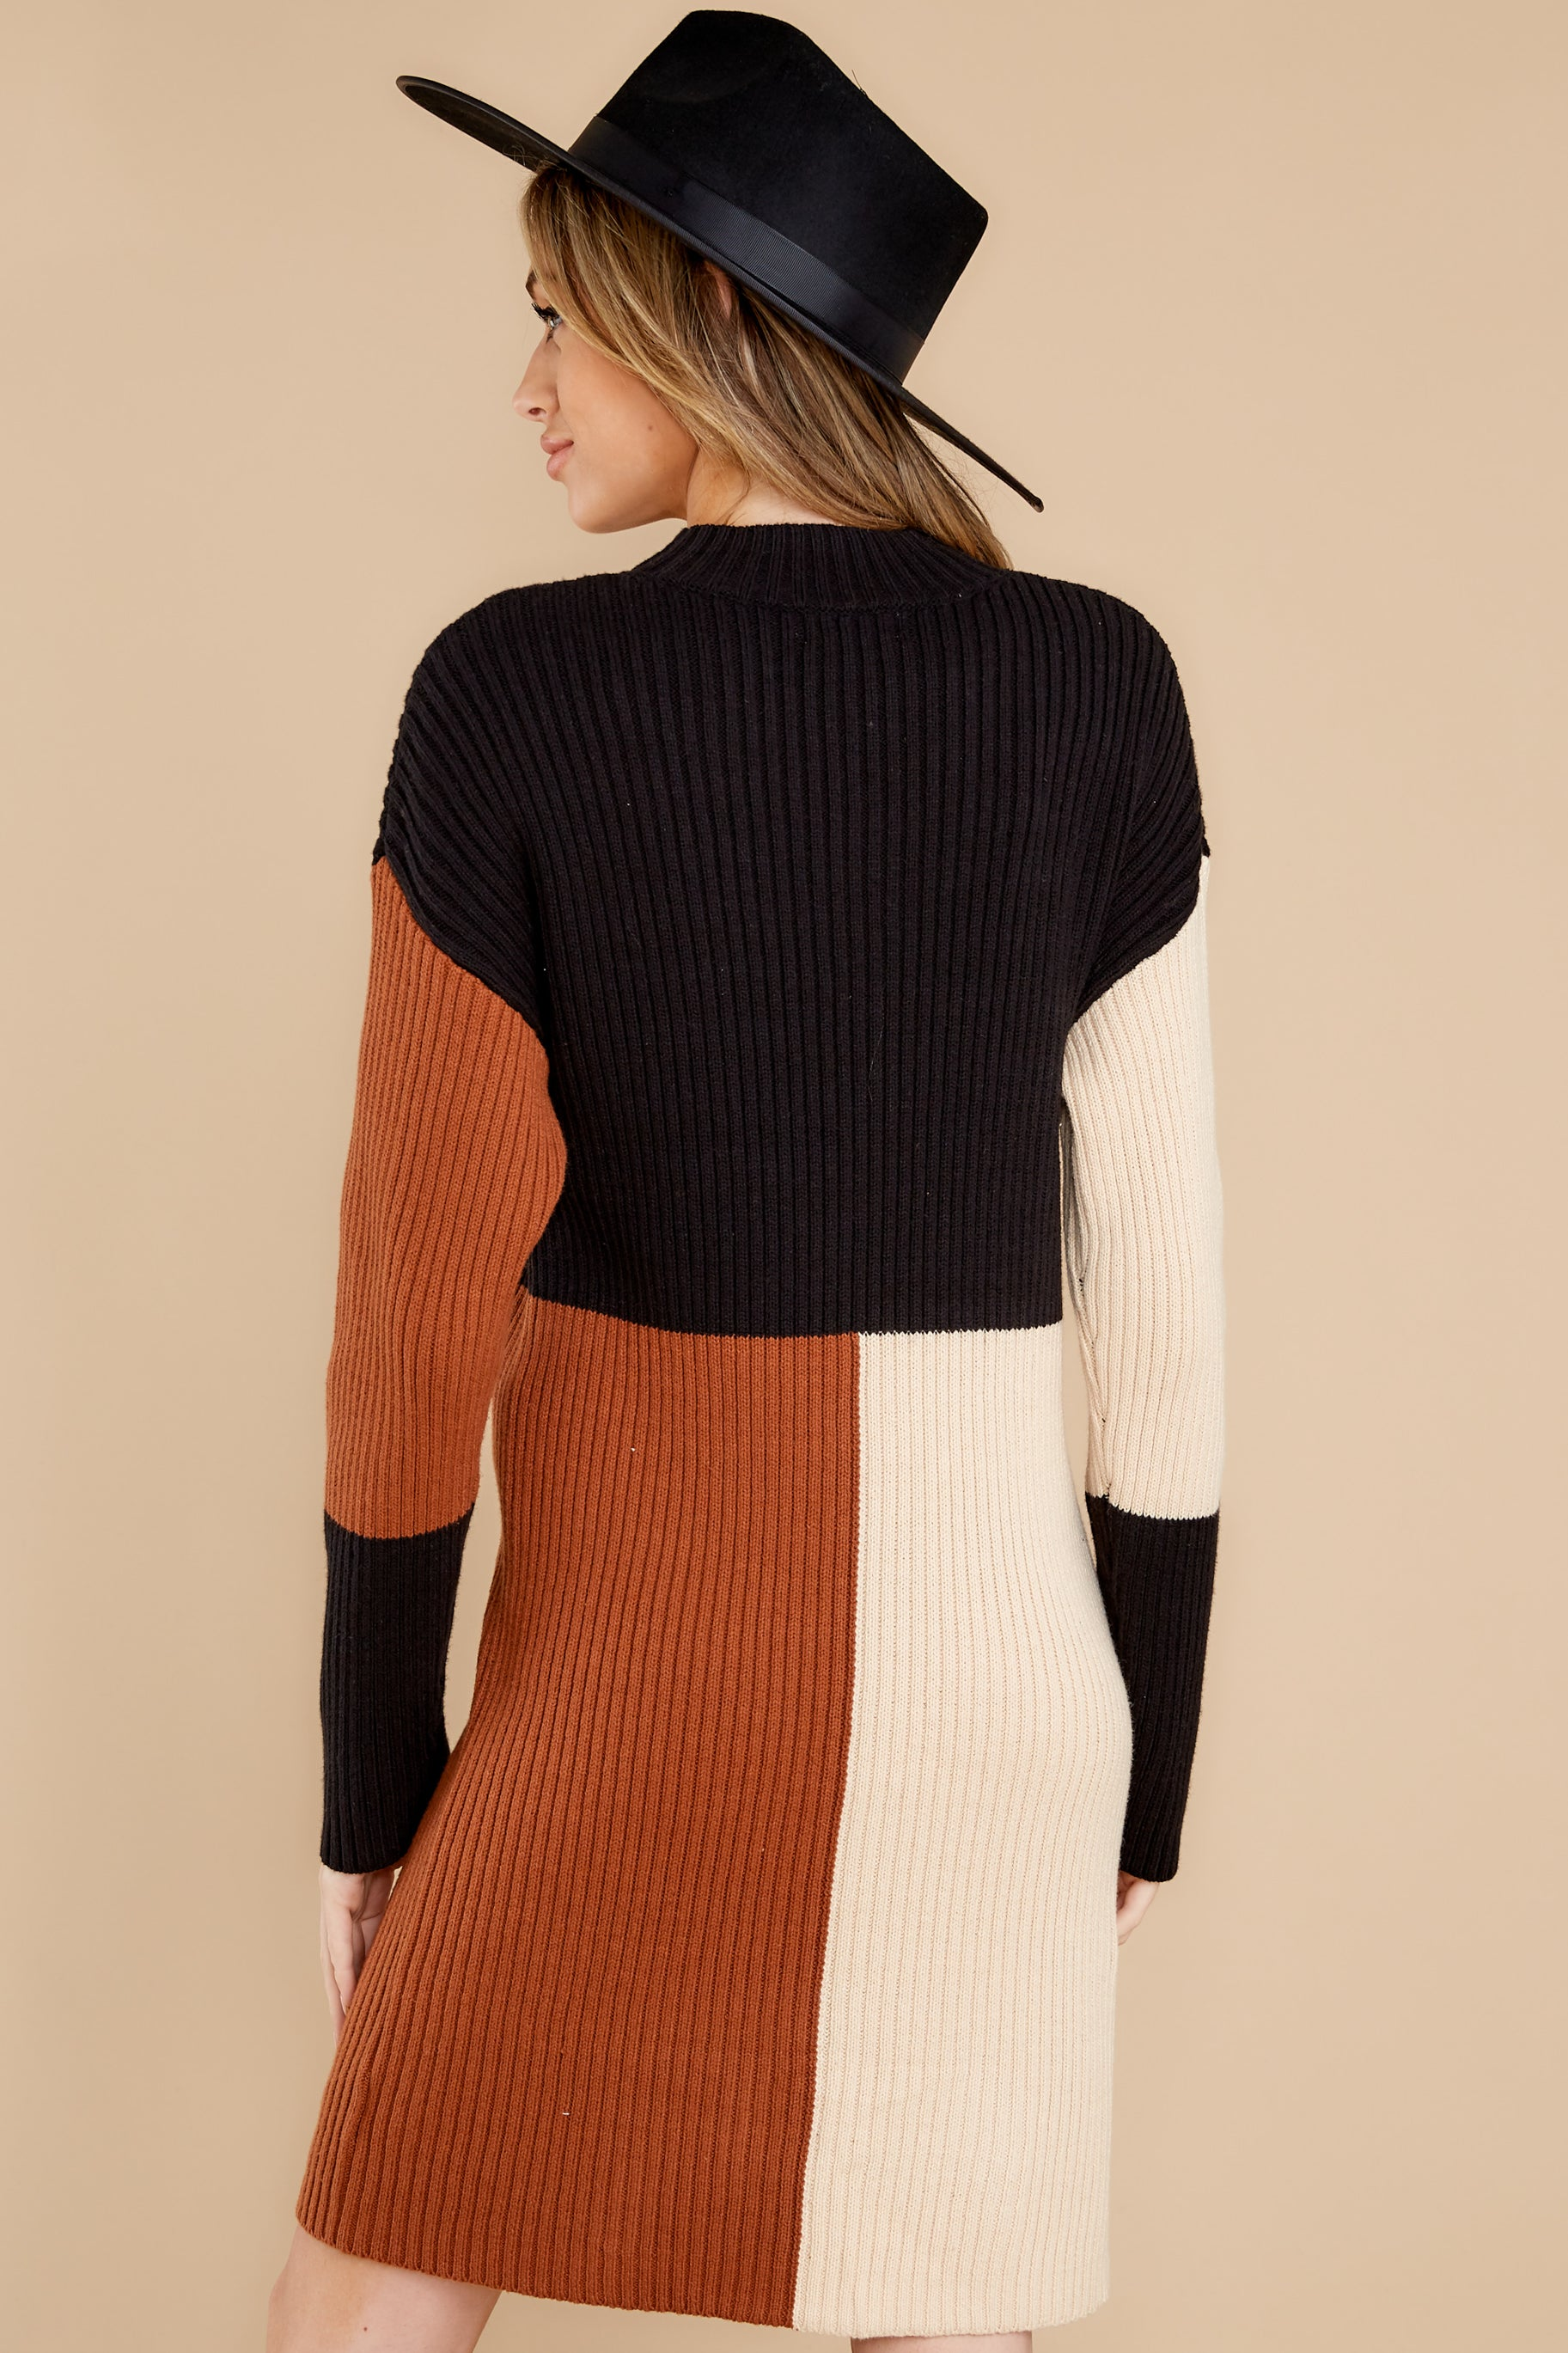 8 Around The Bend Black And Camel Sweater Dress at reddress.com